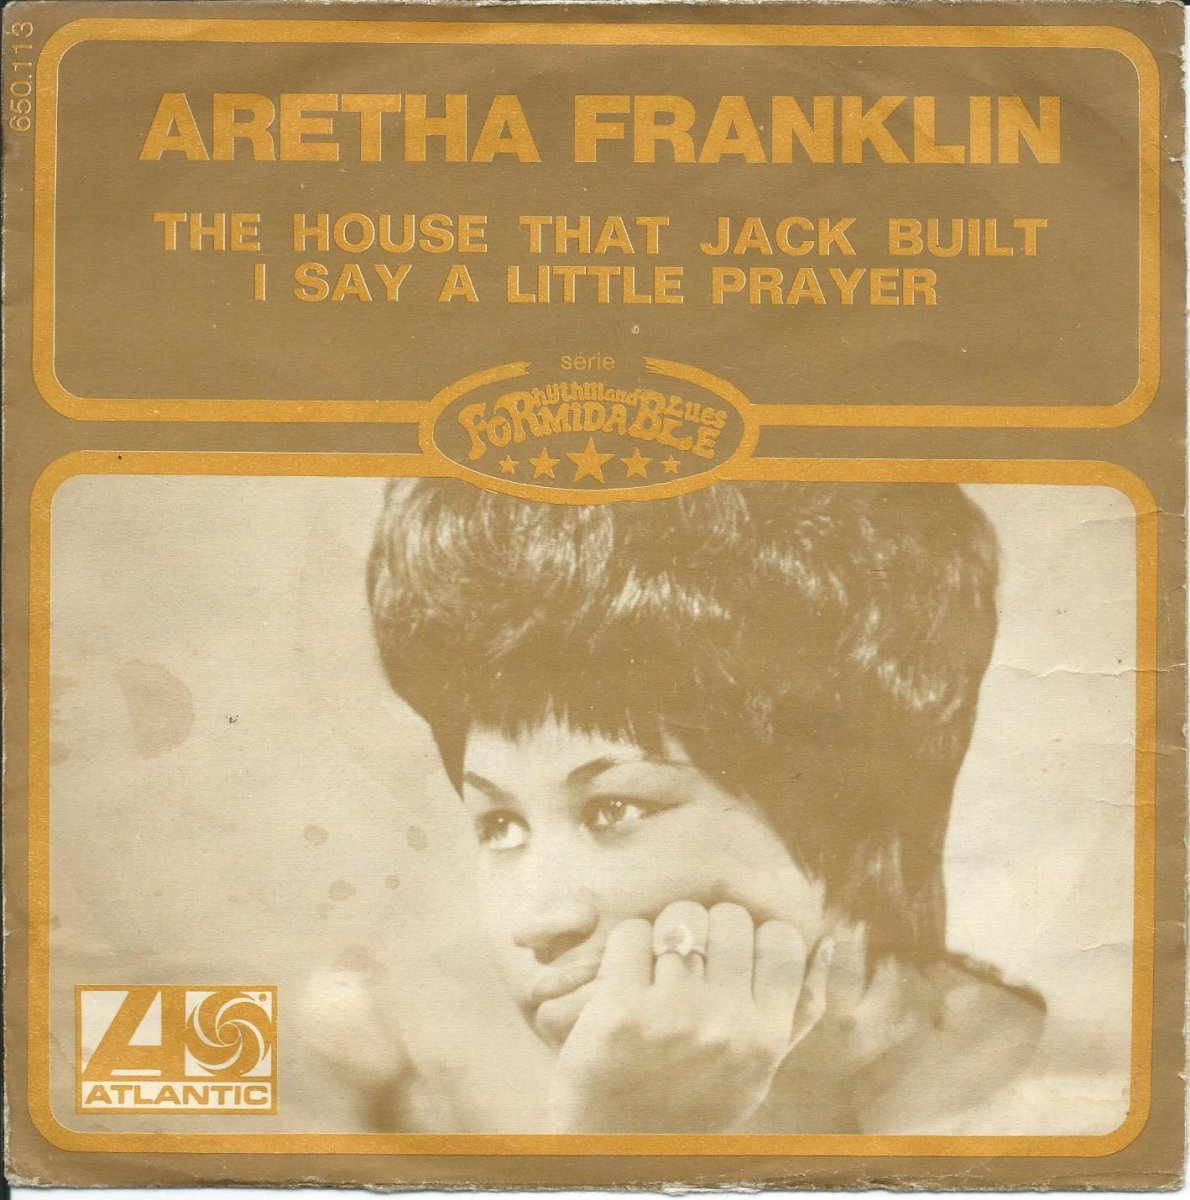 ARETHA FRANKLIN / THE HOUSE THAT JACK BUILT / I SAY A LITTLE PRAYER (7